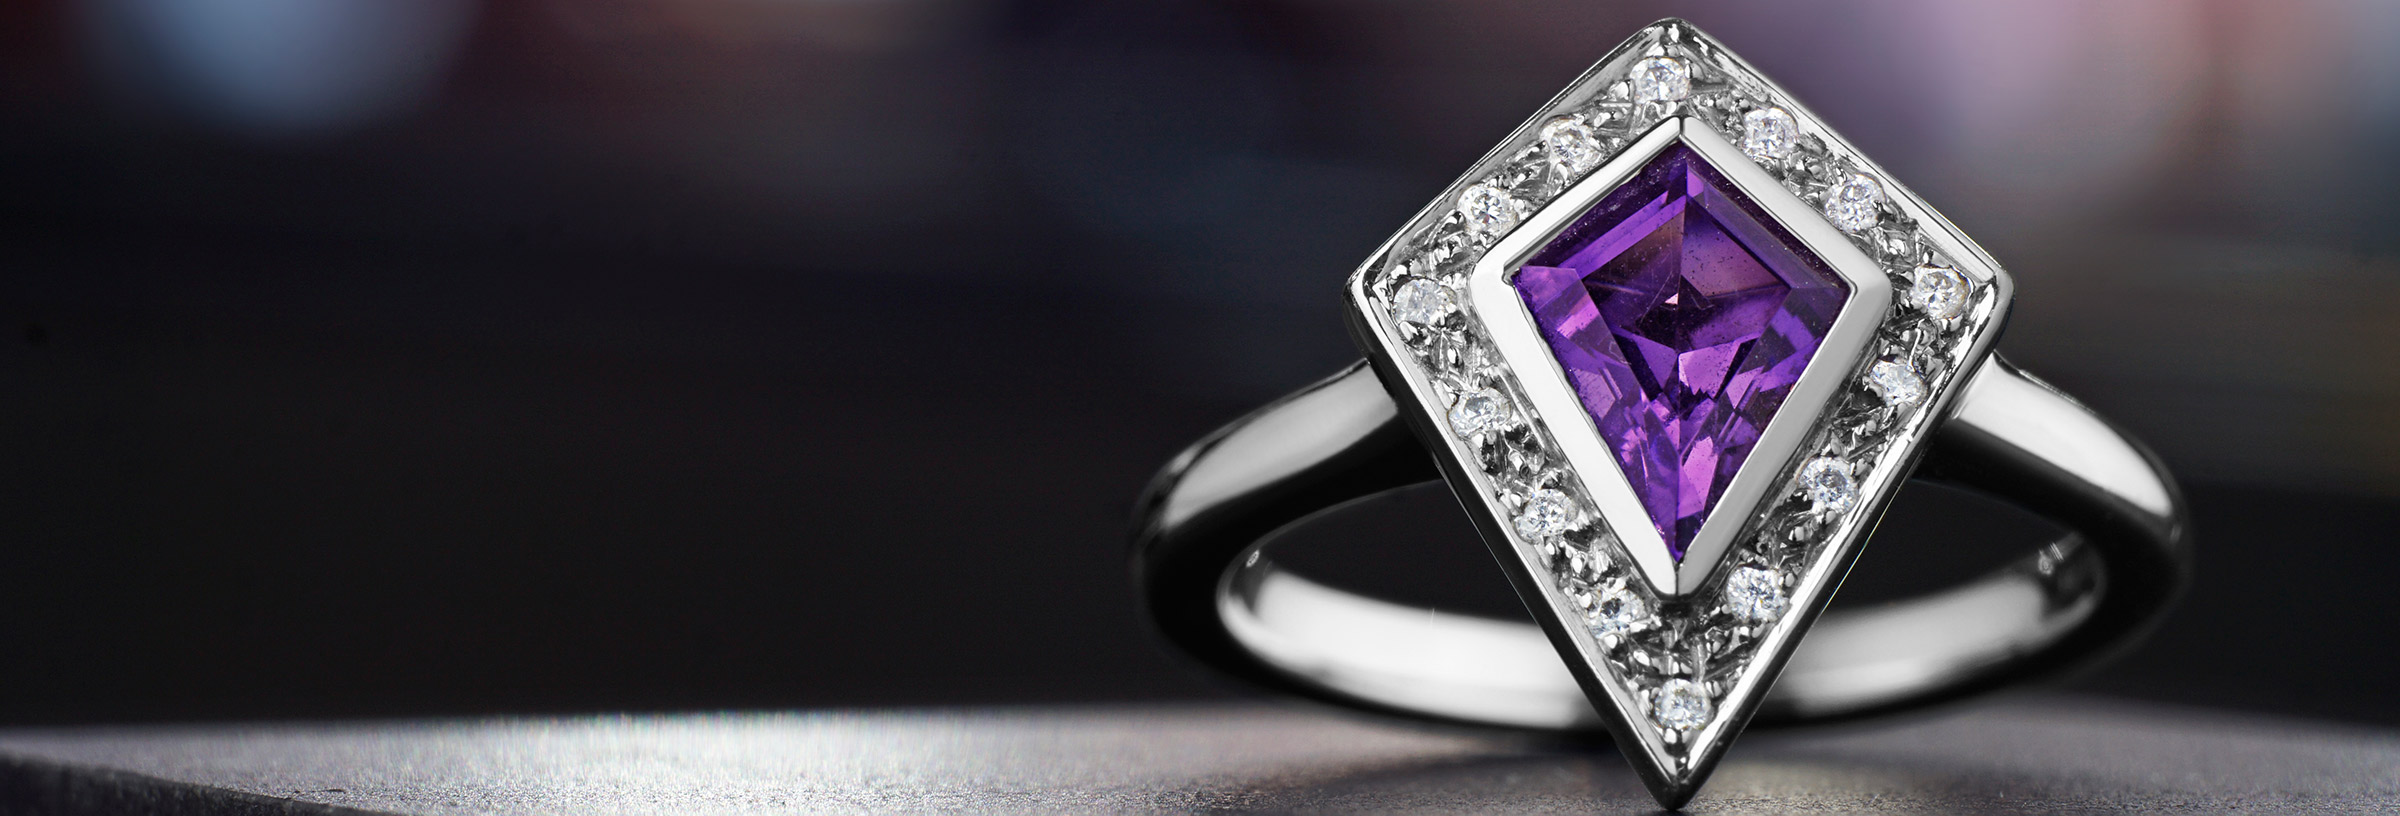 Kite shaped 0.72ct amethyst, diamond and palladium ring